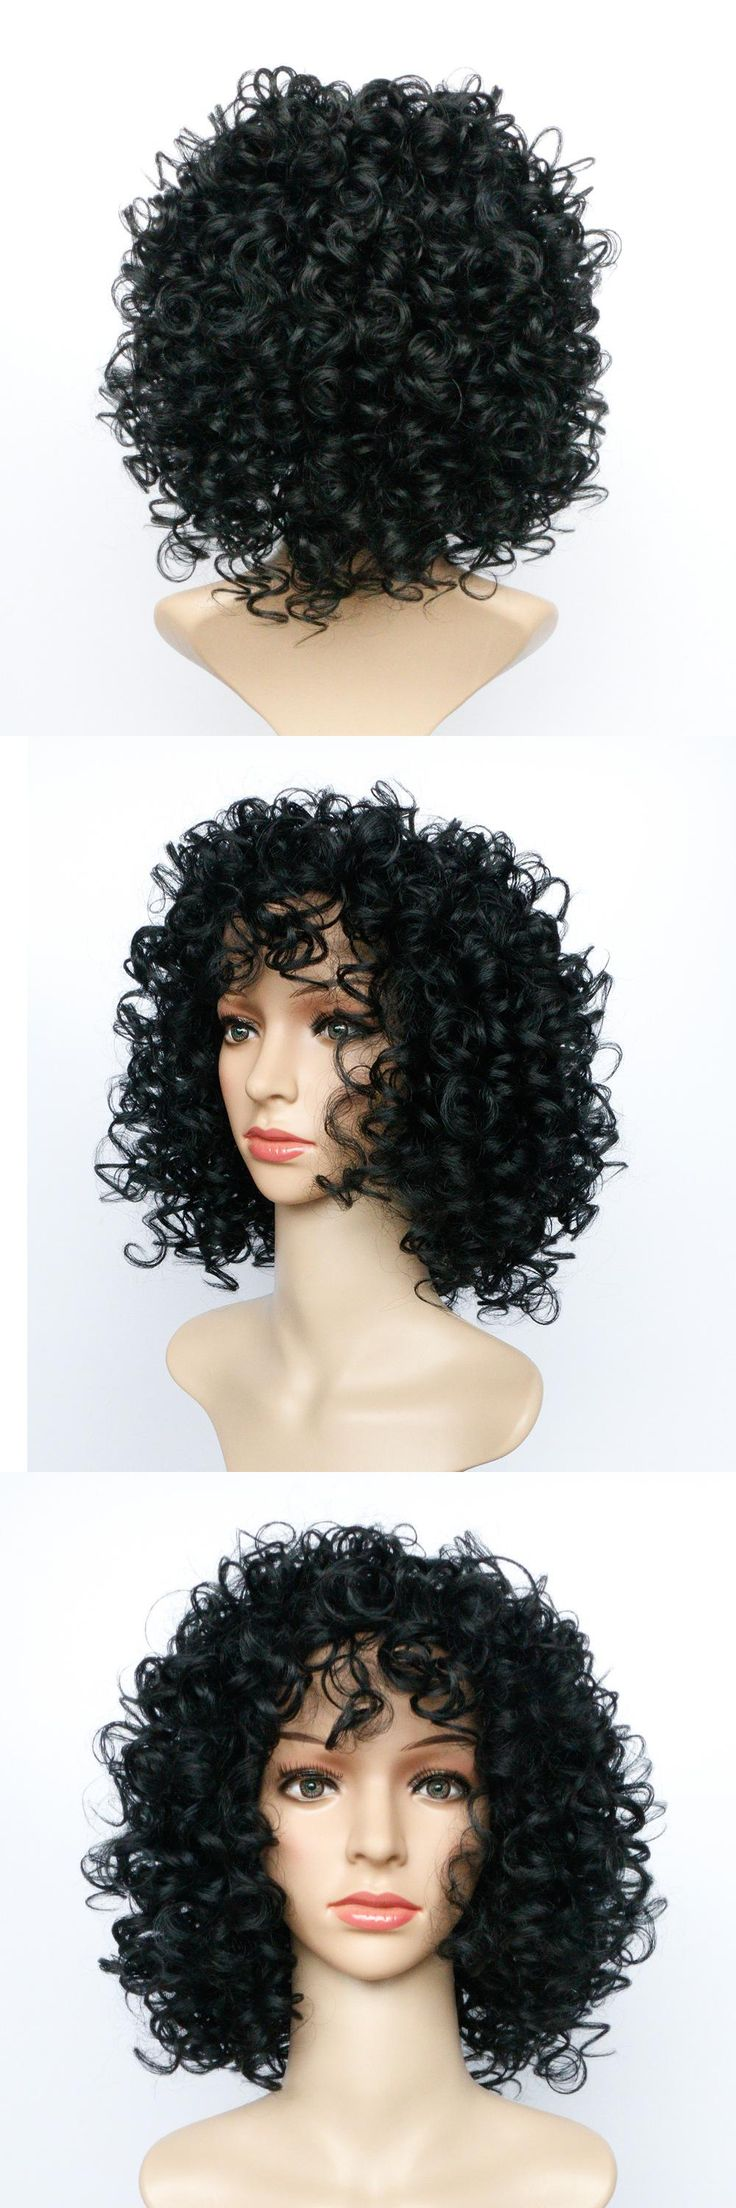 Soloowigs Bouncy Curly Black Synthetic Hair Afro Wigs 14inch Medium Full Lace Hairpieces Puffy hair Style for the Black Women